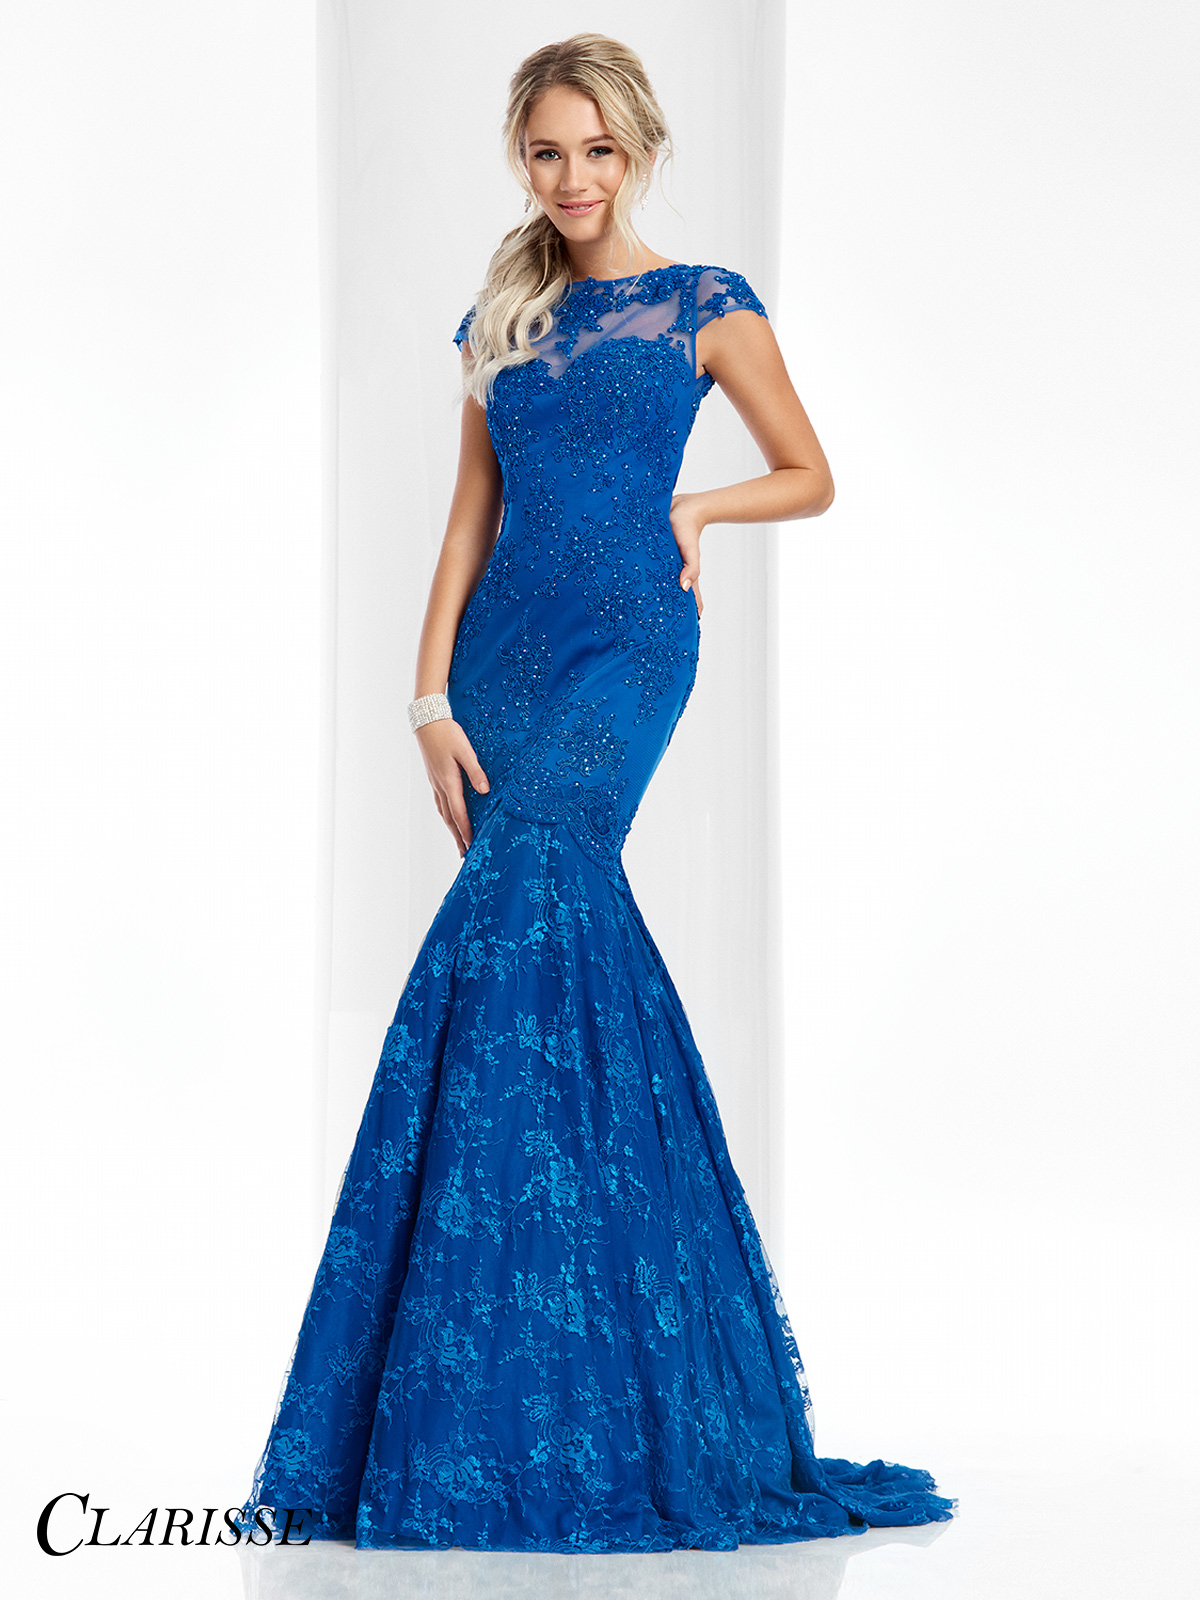 Clarisse Prom Dress 3065 | Promgirl.net